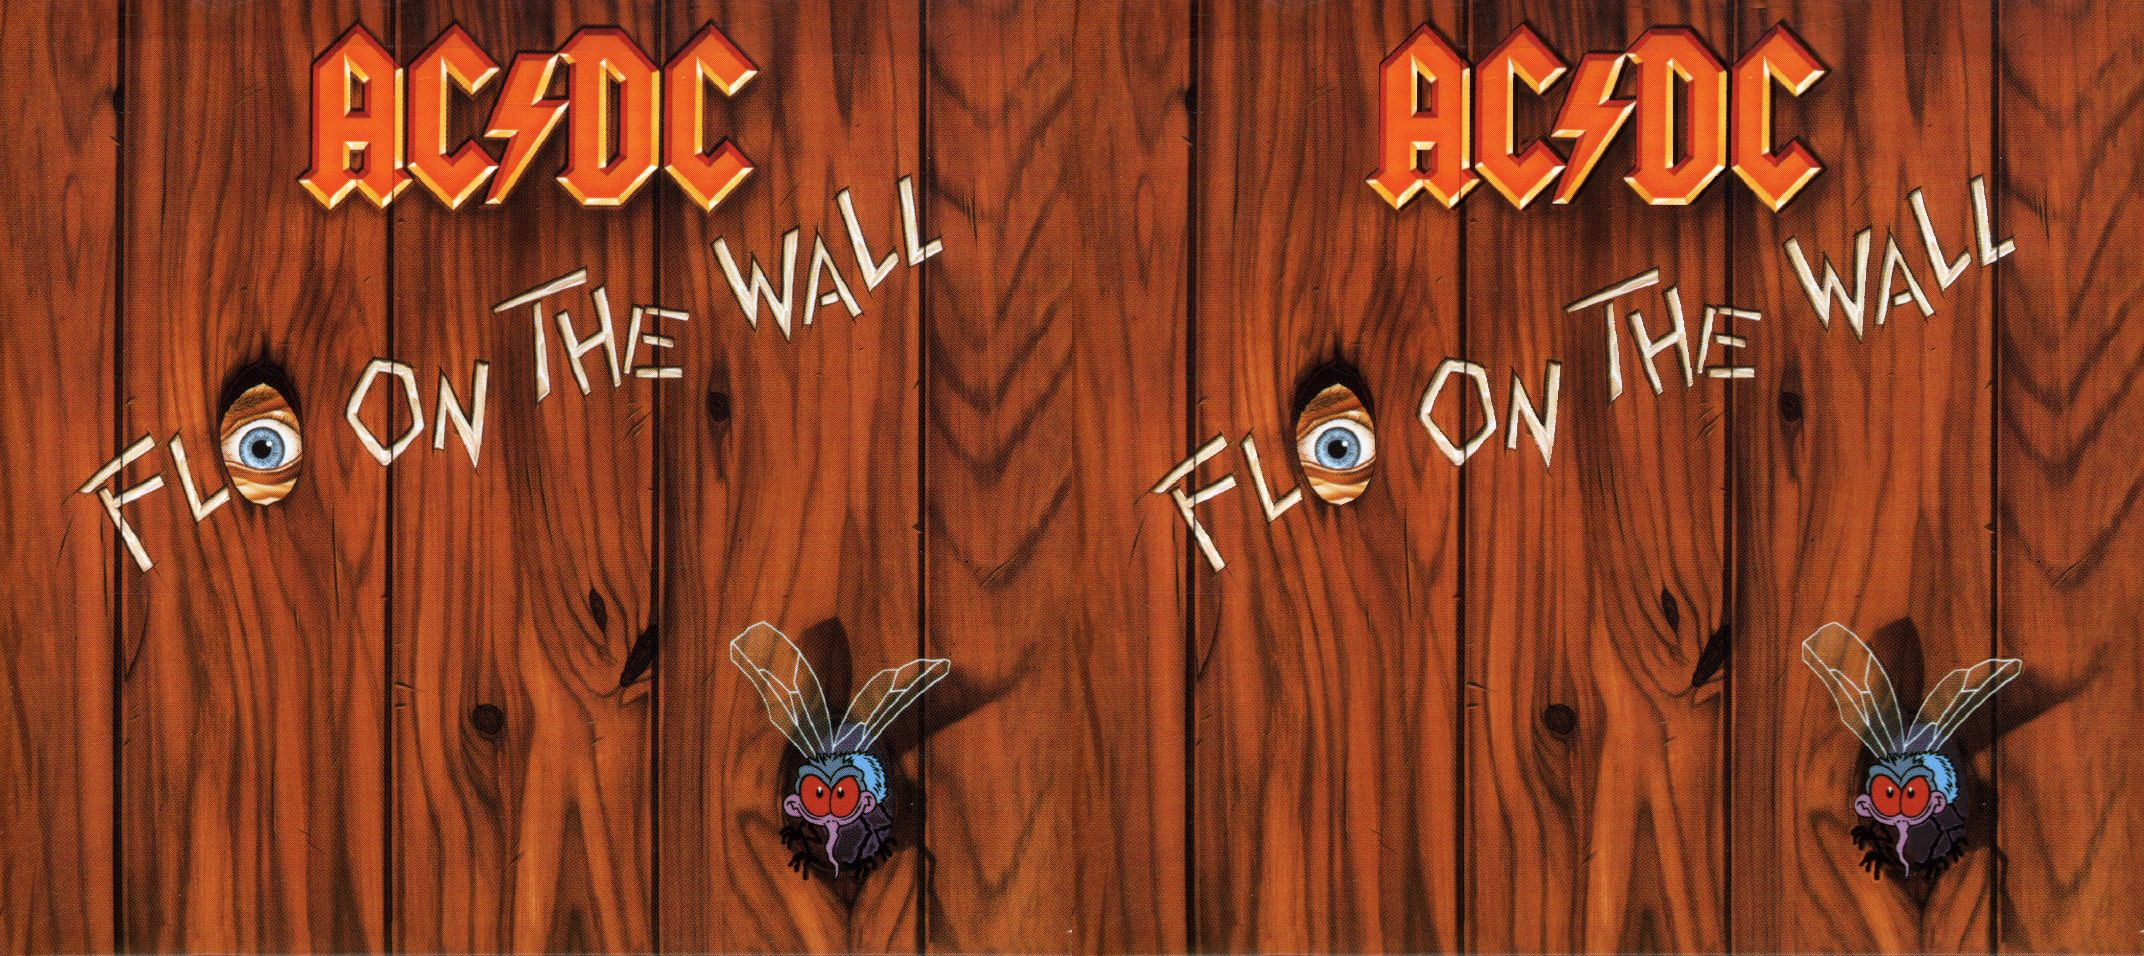 ACDC in 3D:Fly On The Wall 3D Side By Side JPS